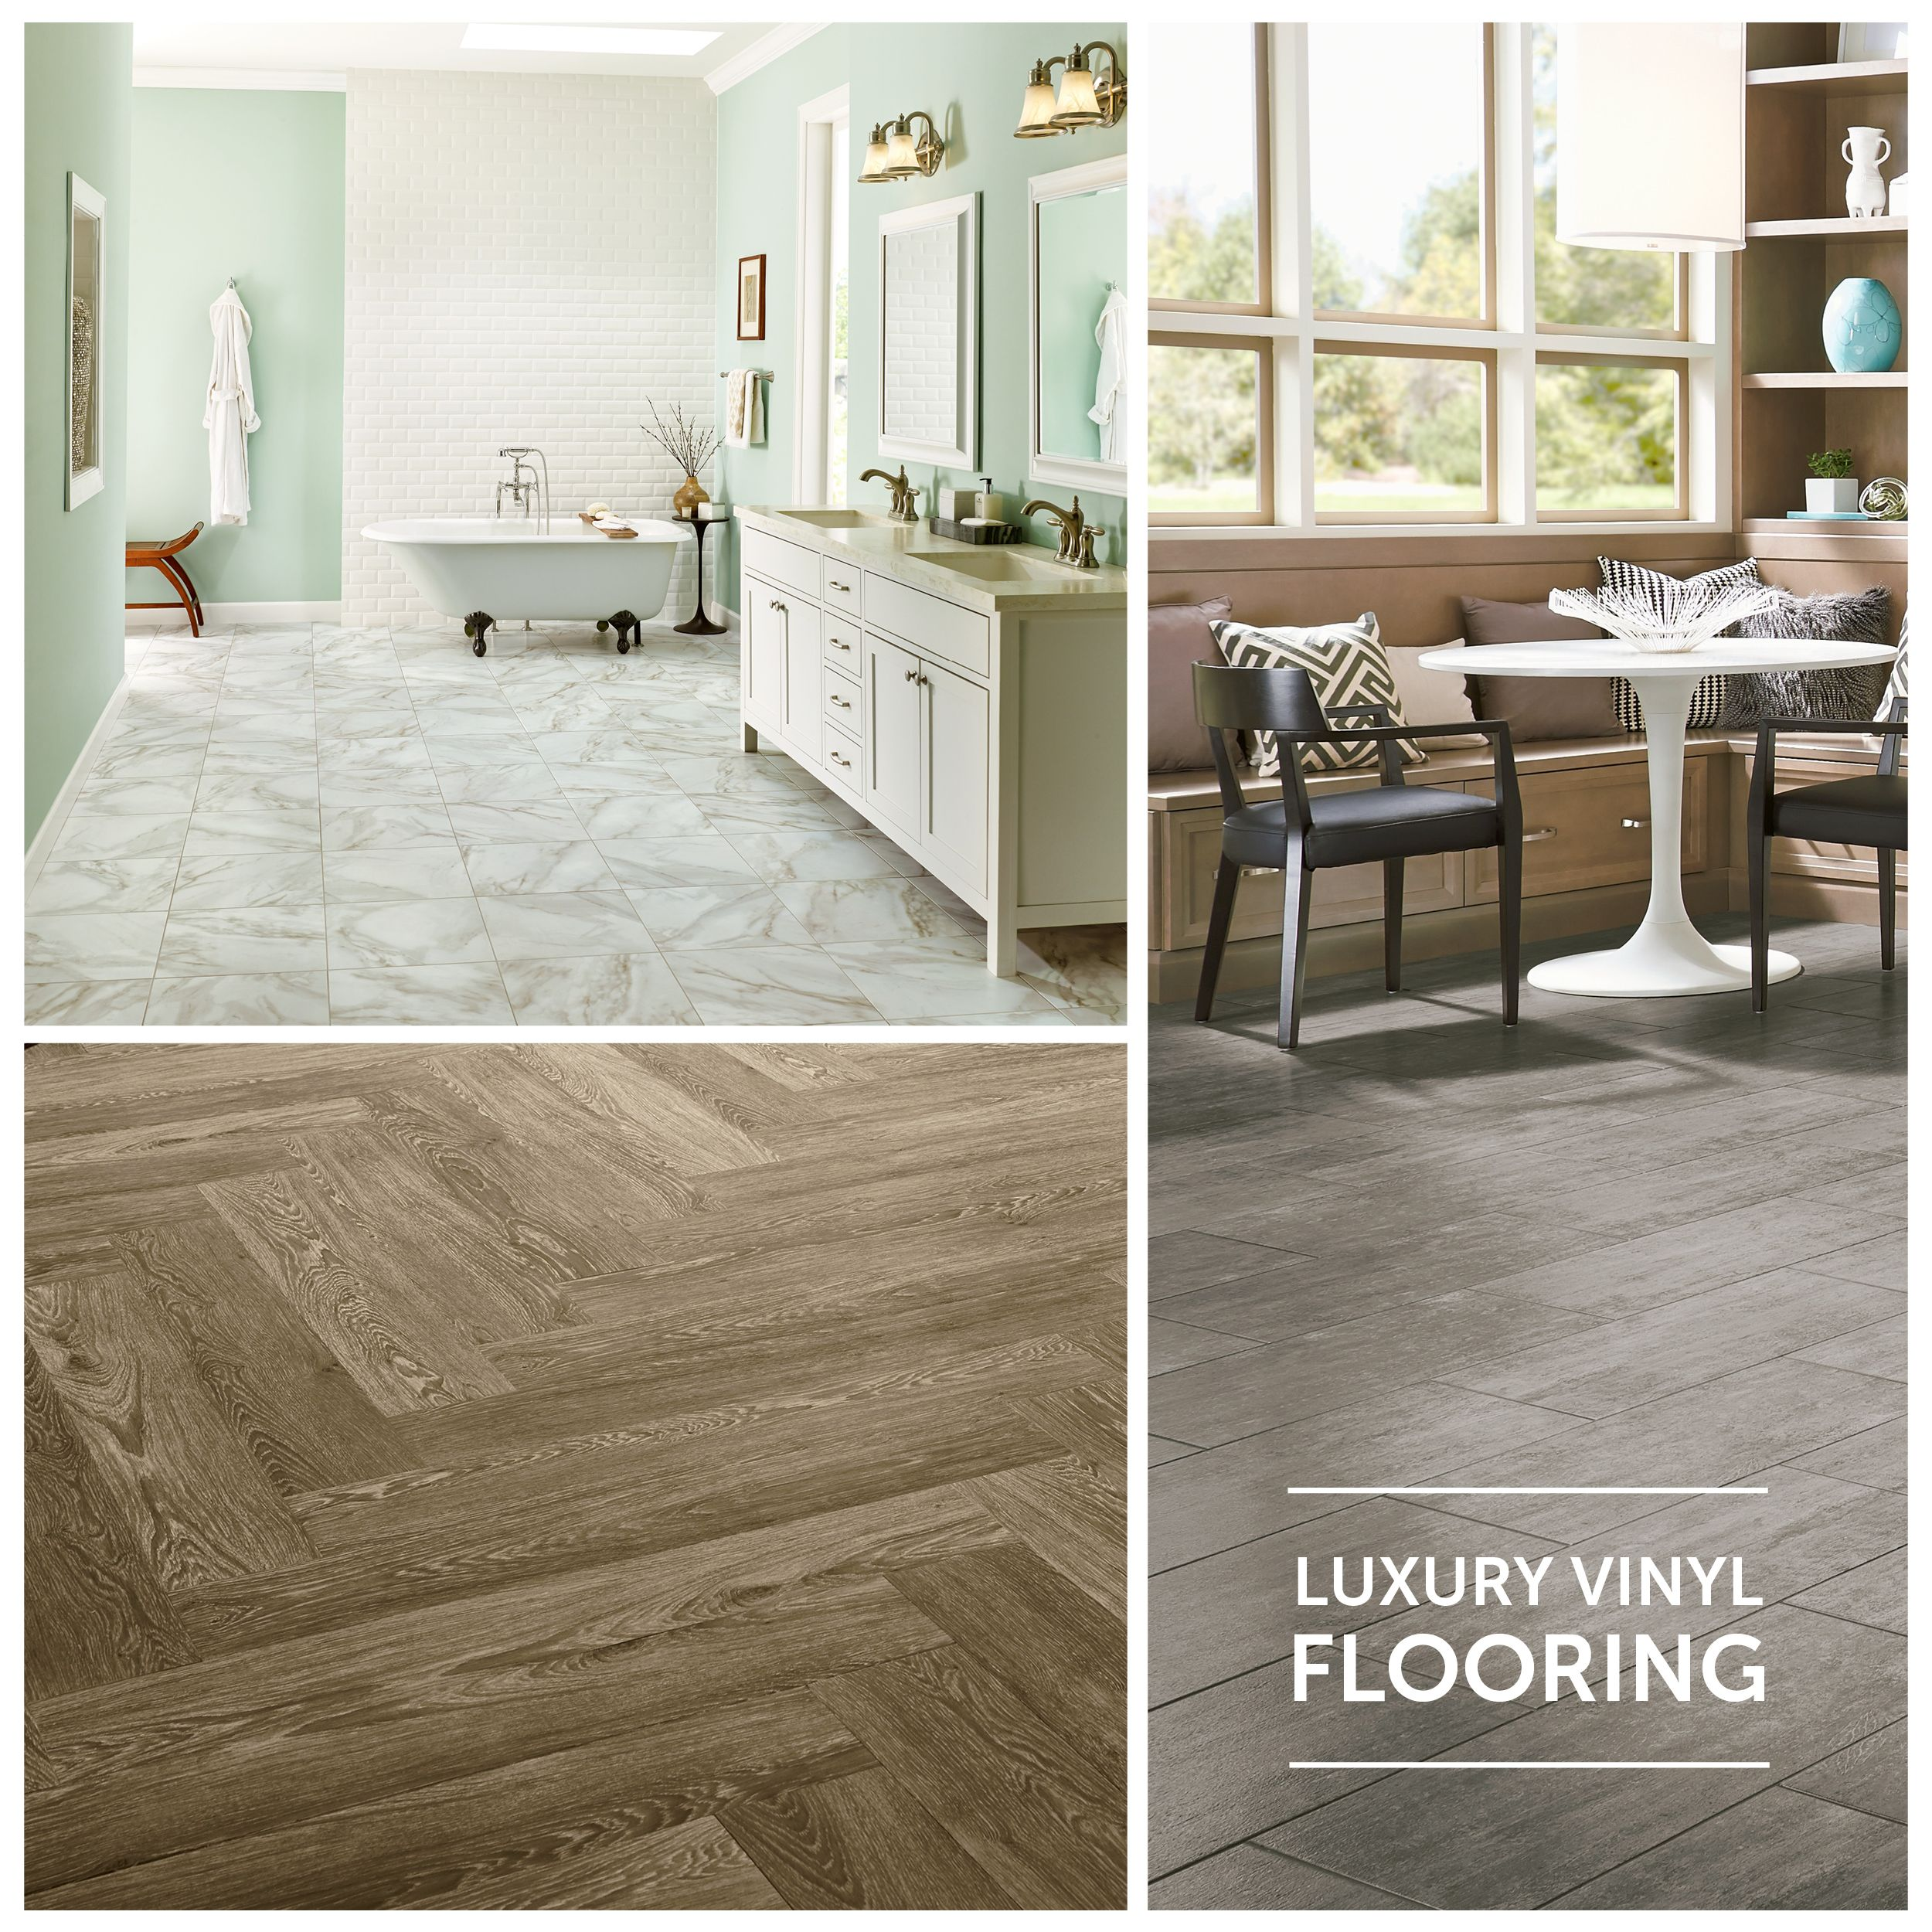 Luxury vinyl flooring stone wood looks lvt lvp for Home decor vinyl flooring